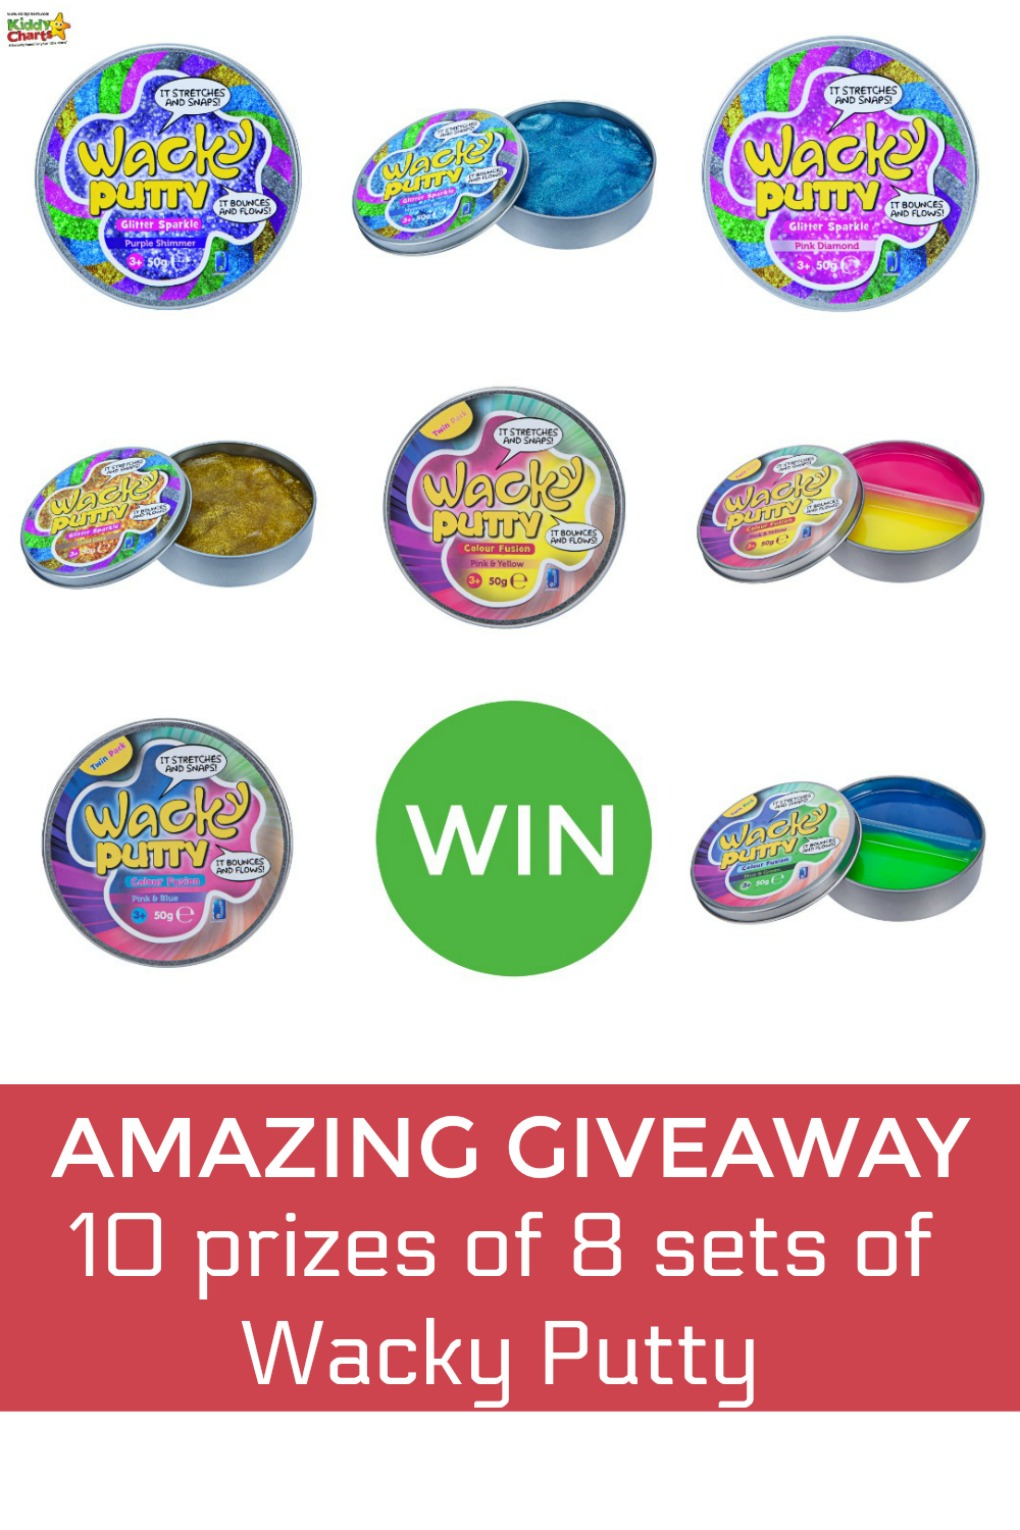 Come along and you can WIN some wacky putty to keep the kids entertained today! #putty #activities #kidsactivities #toys